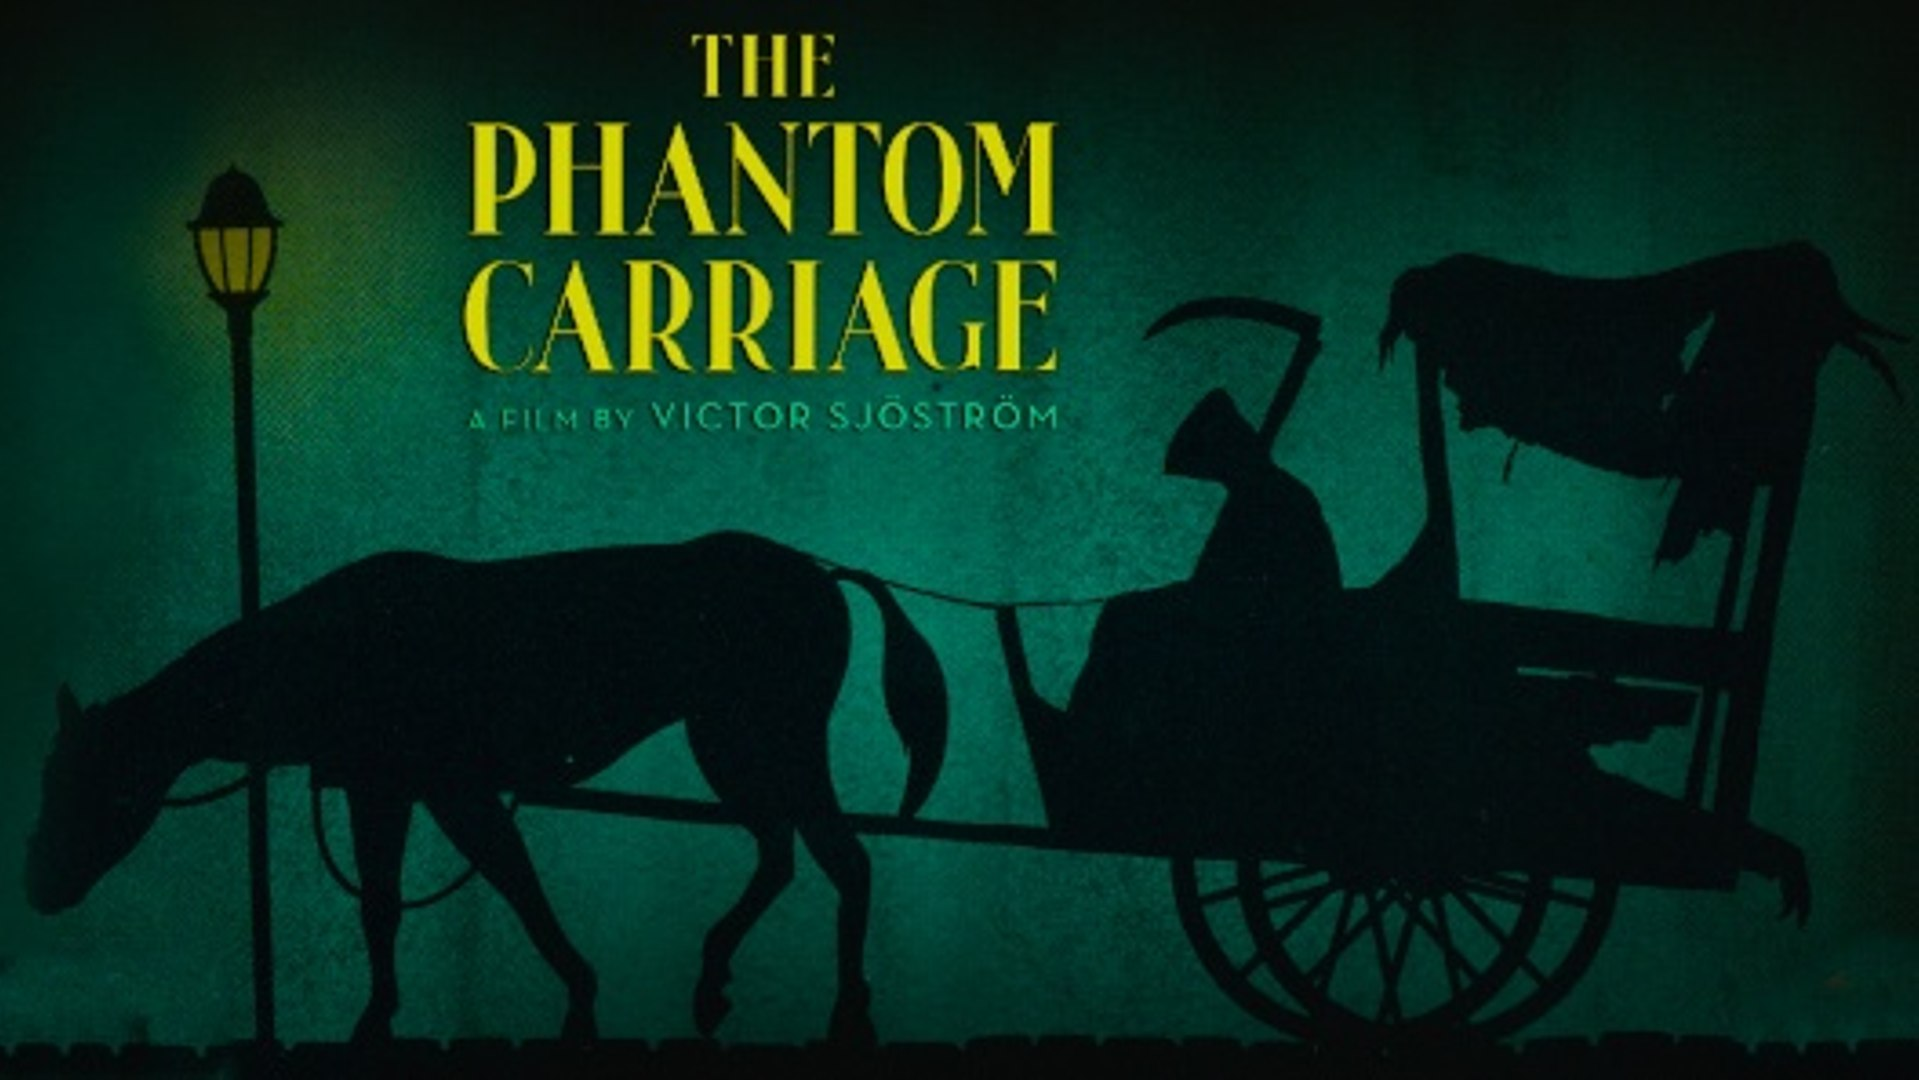 the phantom carriage 31 days of horror